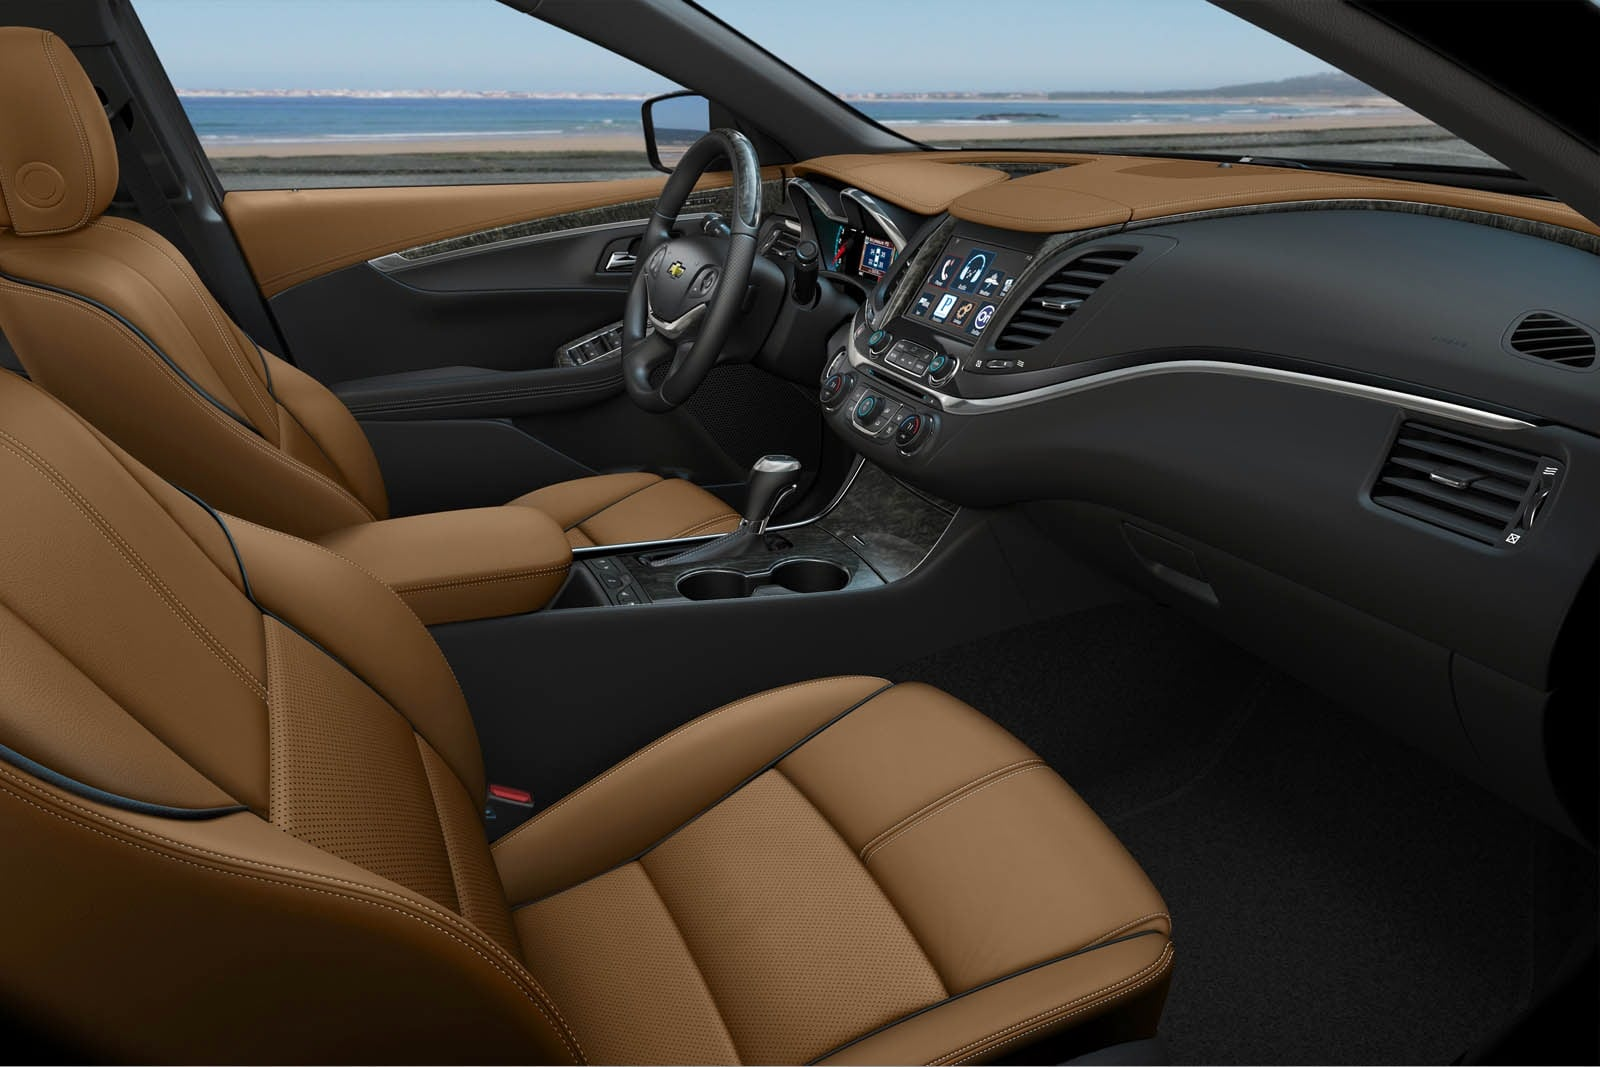 hight resolution of the interior design is sharp though materials quality in some places is underwhelming leather upholstery comes standard on the impala premier